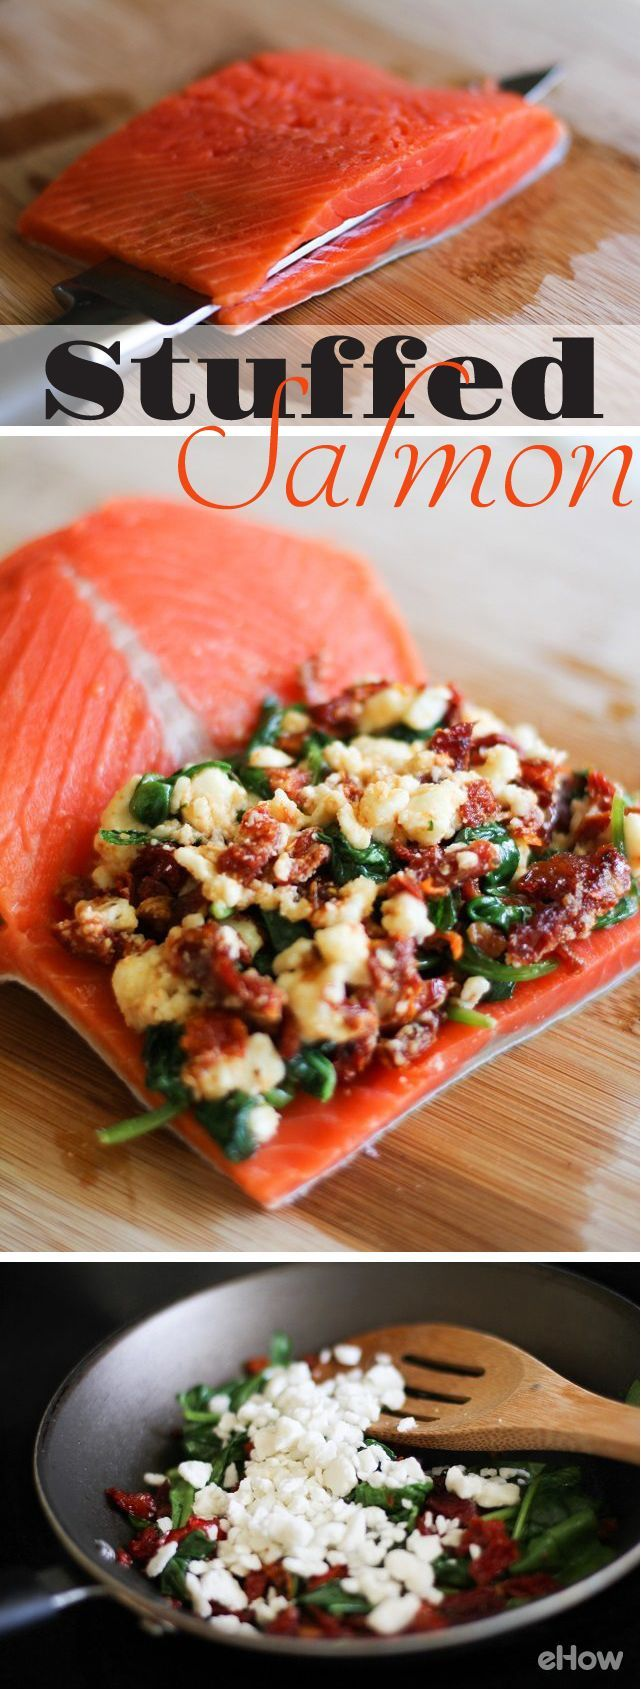 You've never had salmon like this! Stuff salmon with feta, sundried tomatoes and spinach for an amazing flavor combo you would never expect. The recipe is so easy to follow, you can't mess it up! I used tomato basil goat cheese instead of feta and Roma tomatoes instead of sundried tomatoes! Must try.